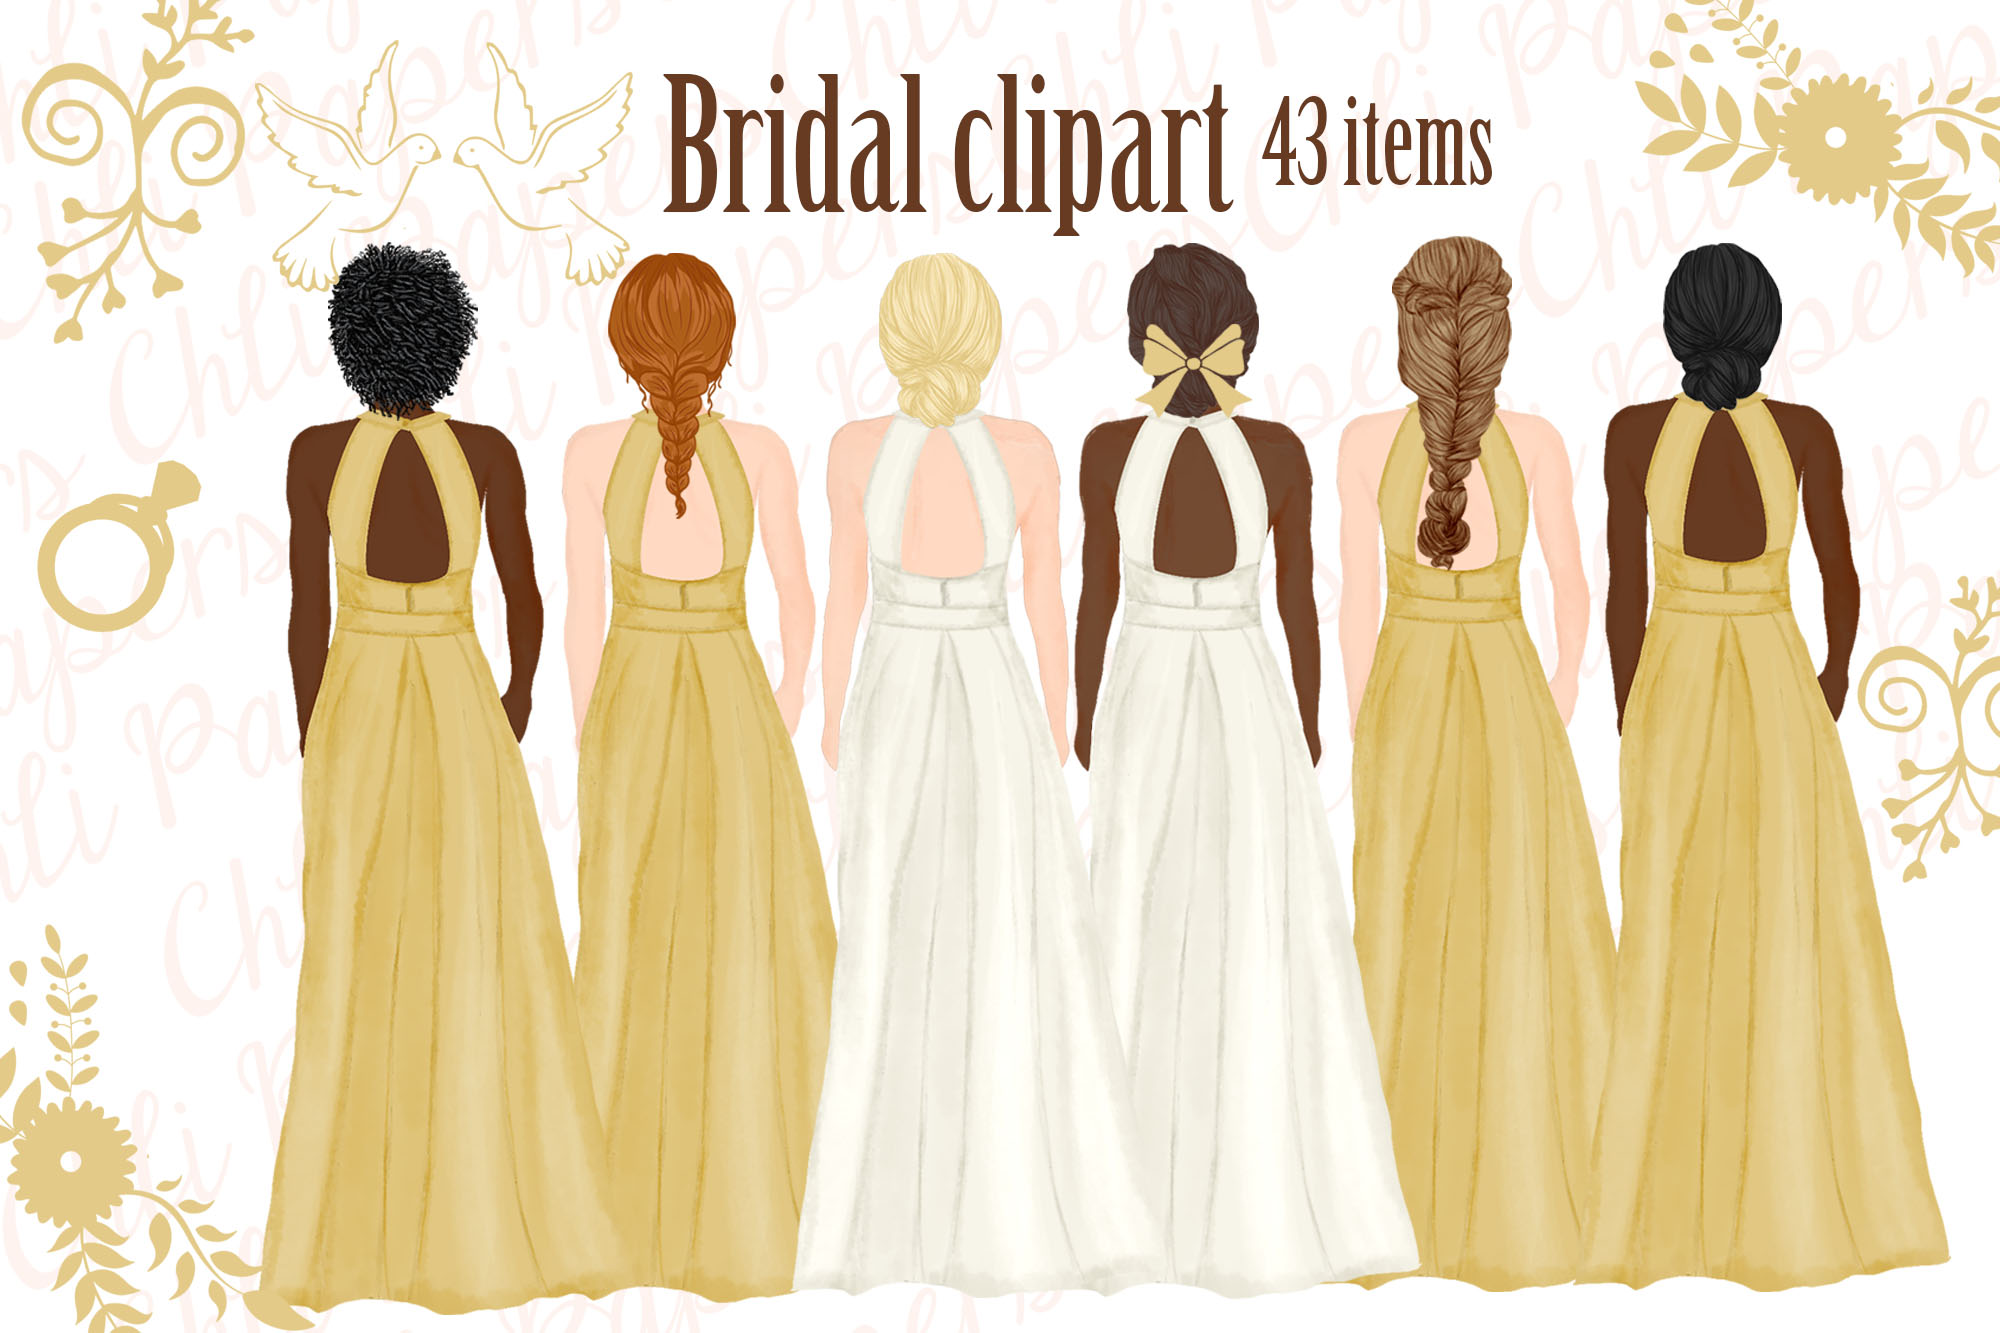 Bride and Bridesmaids clipart,Wedding clipart,Bridal clipart example image 1